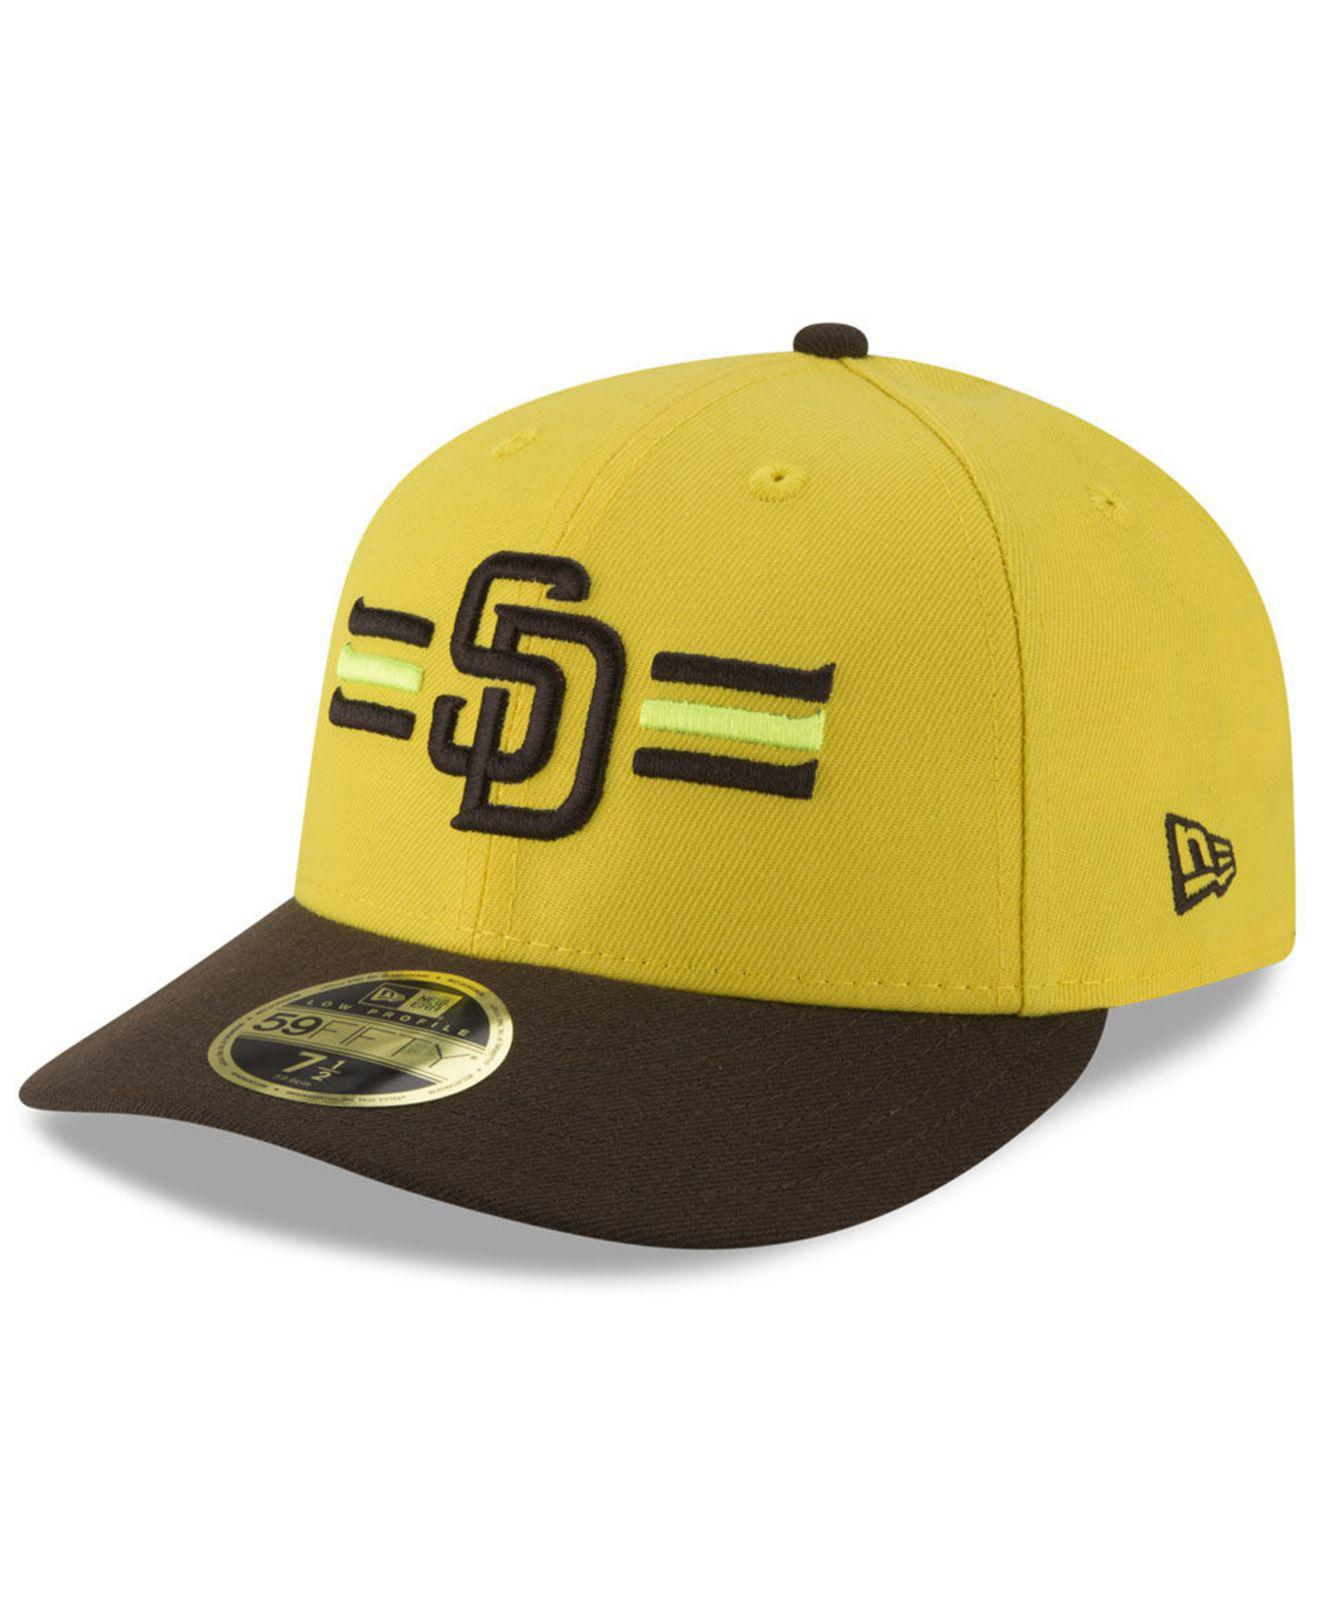 5b60bb9a76b KTZ. Men s Yellow San Diego Padres Players Weekend Low Profile 59fifty  Fitted Cap